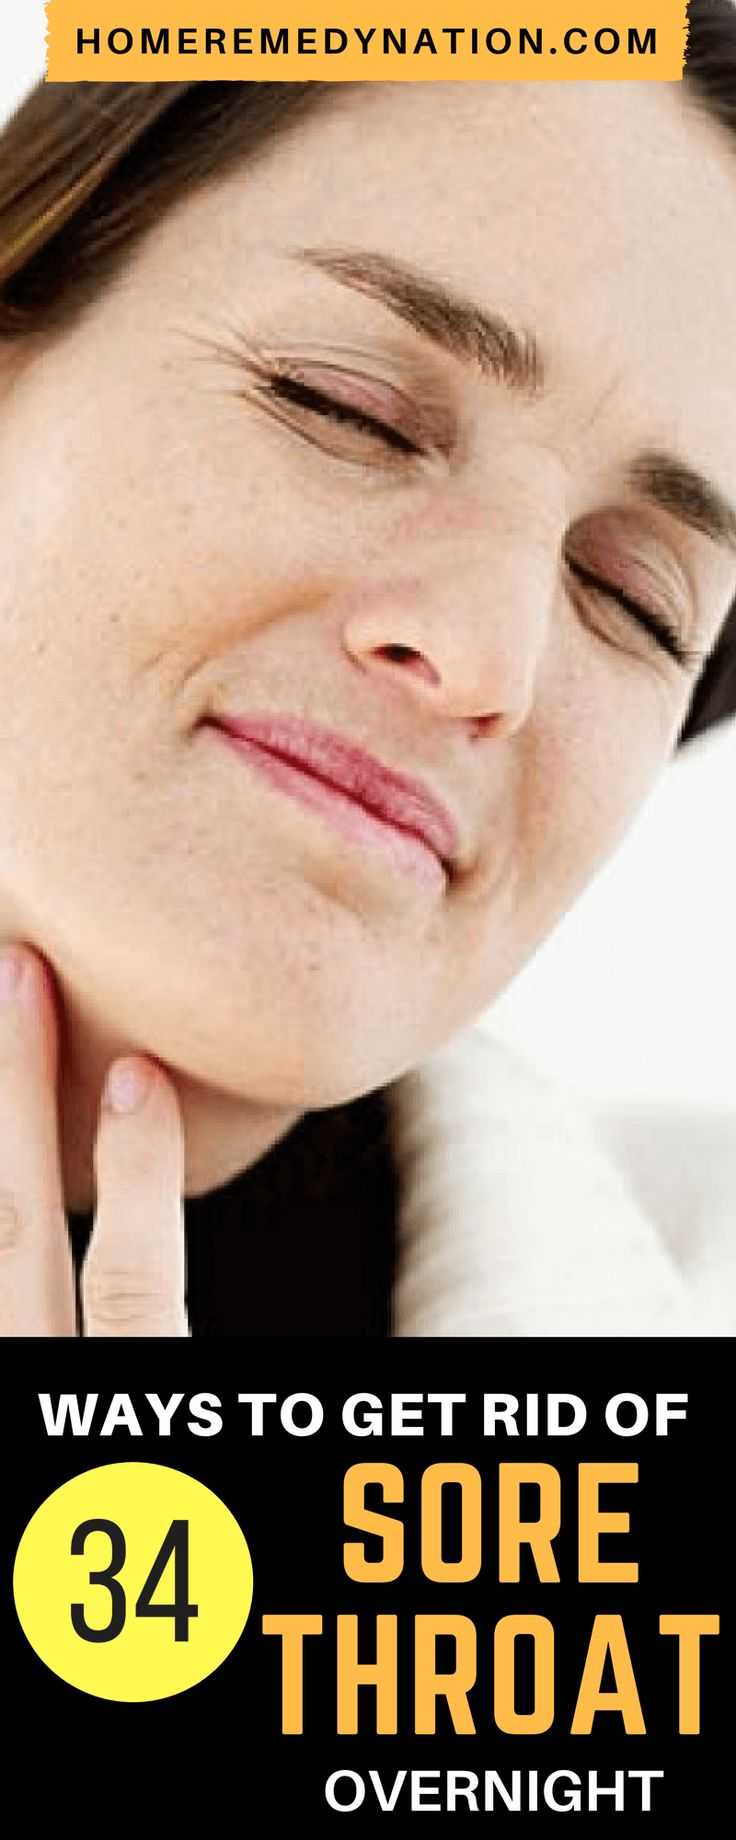 34 Natural Sore Throat Remedies to Help Soothe the Pain | Home Remedy nation